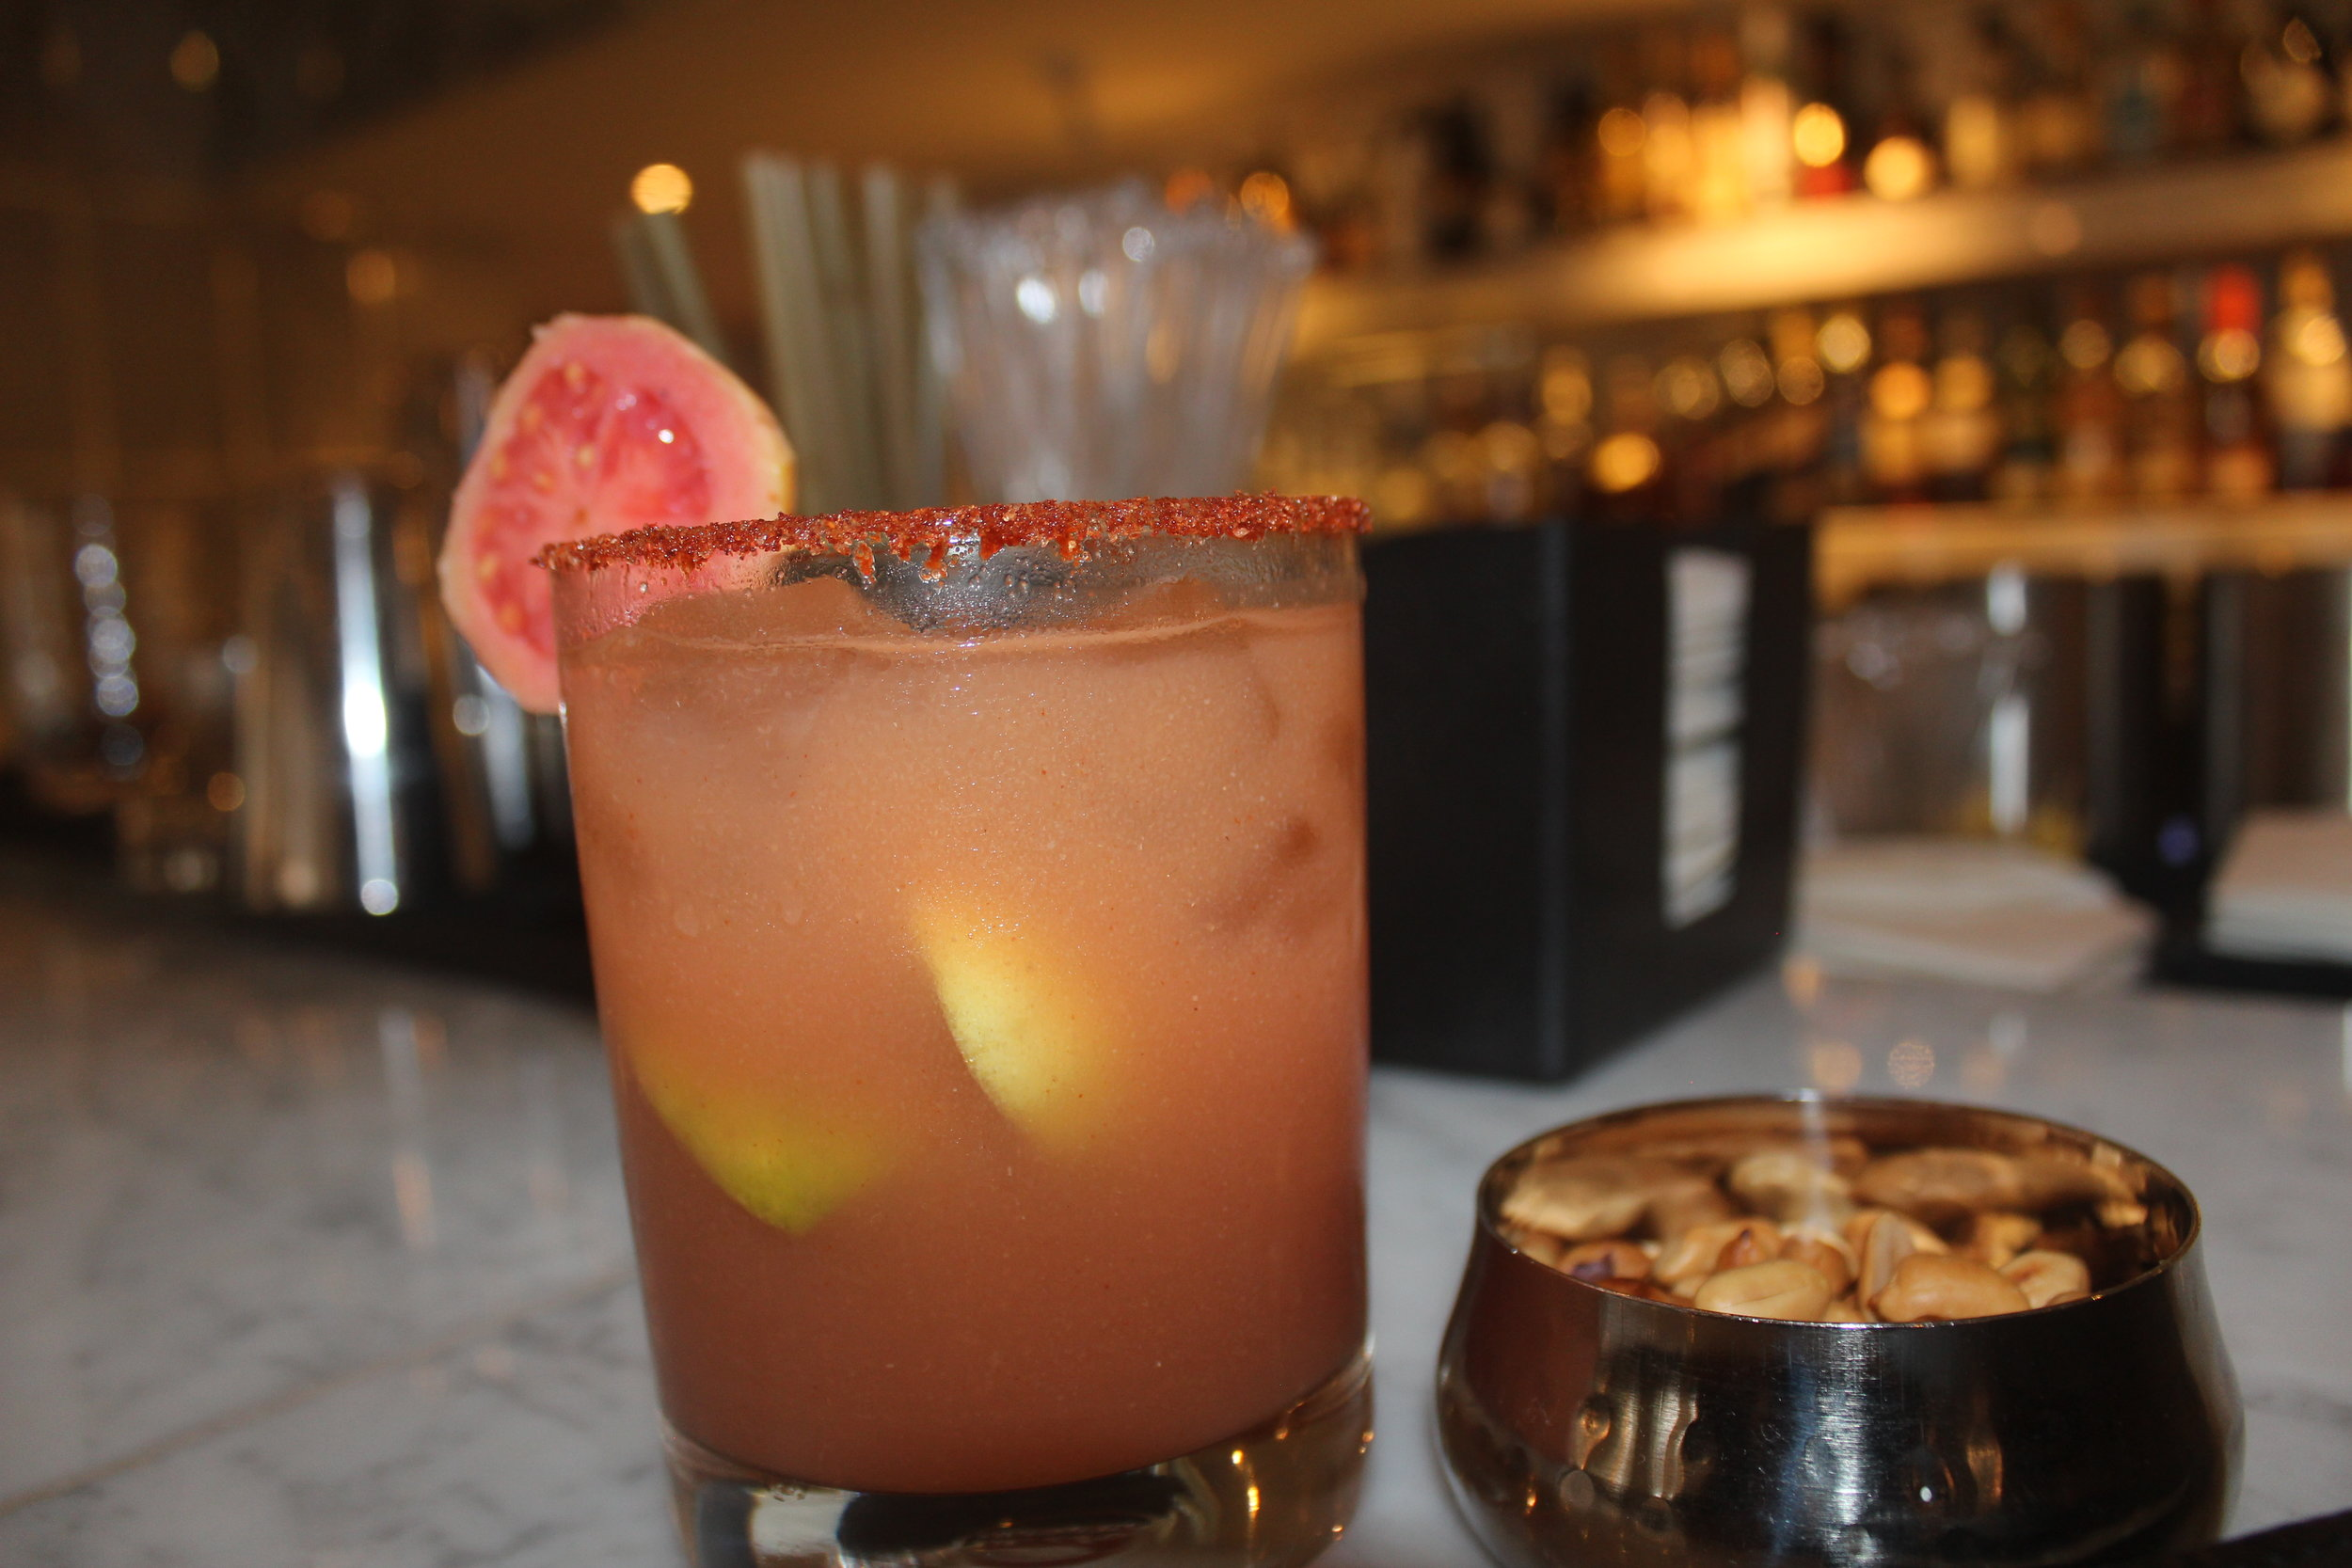 Guava Mary;  Vodka mixed with guava juice and spiced with Moroccan spices.